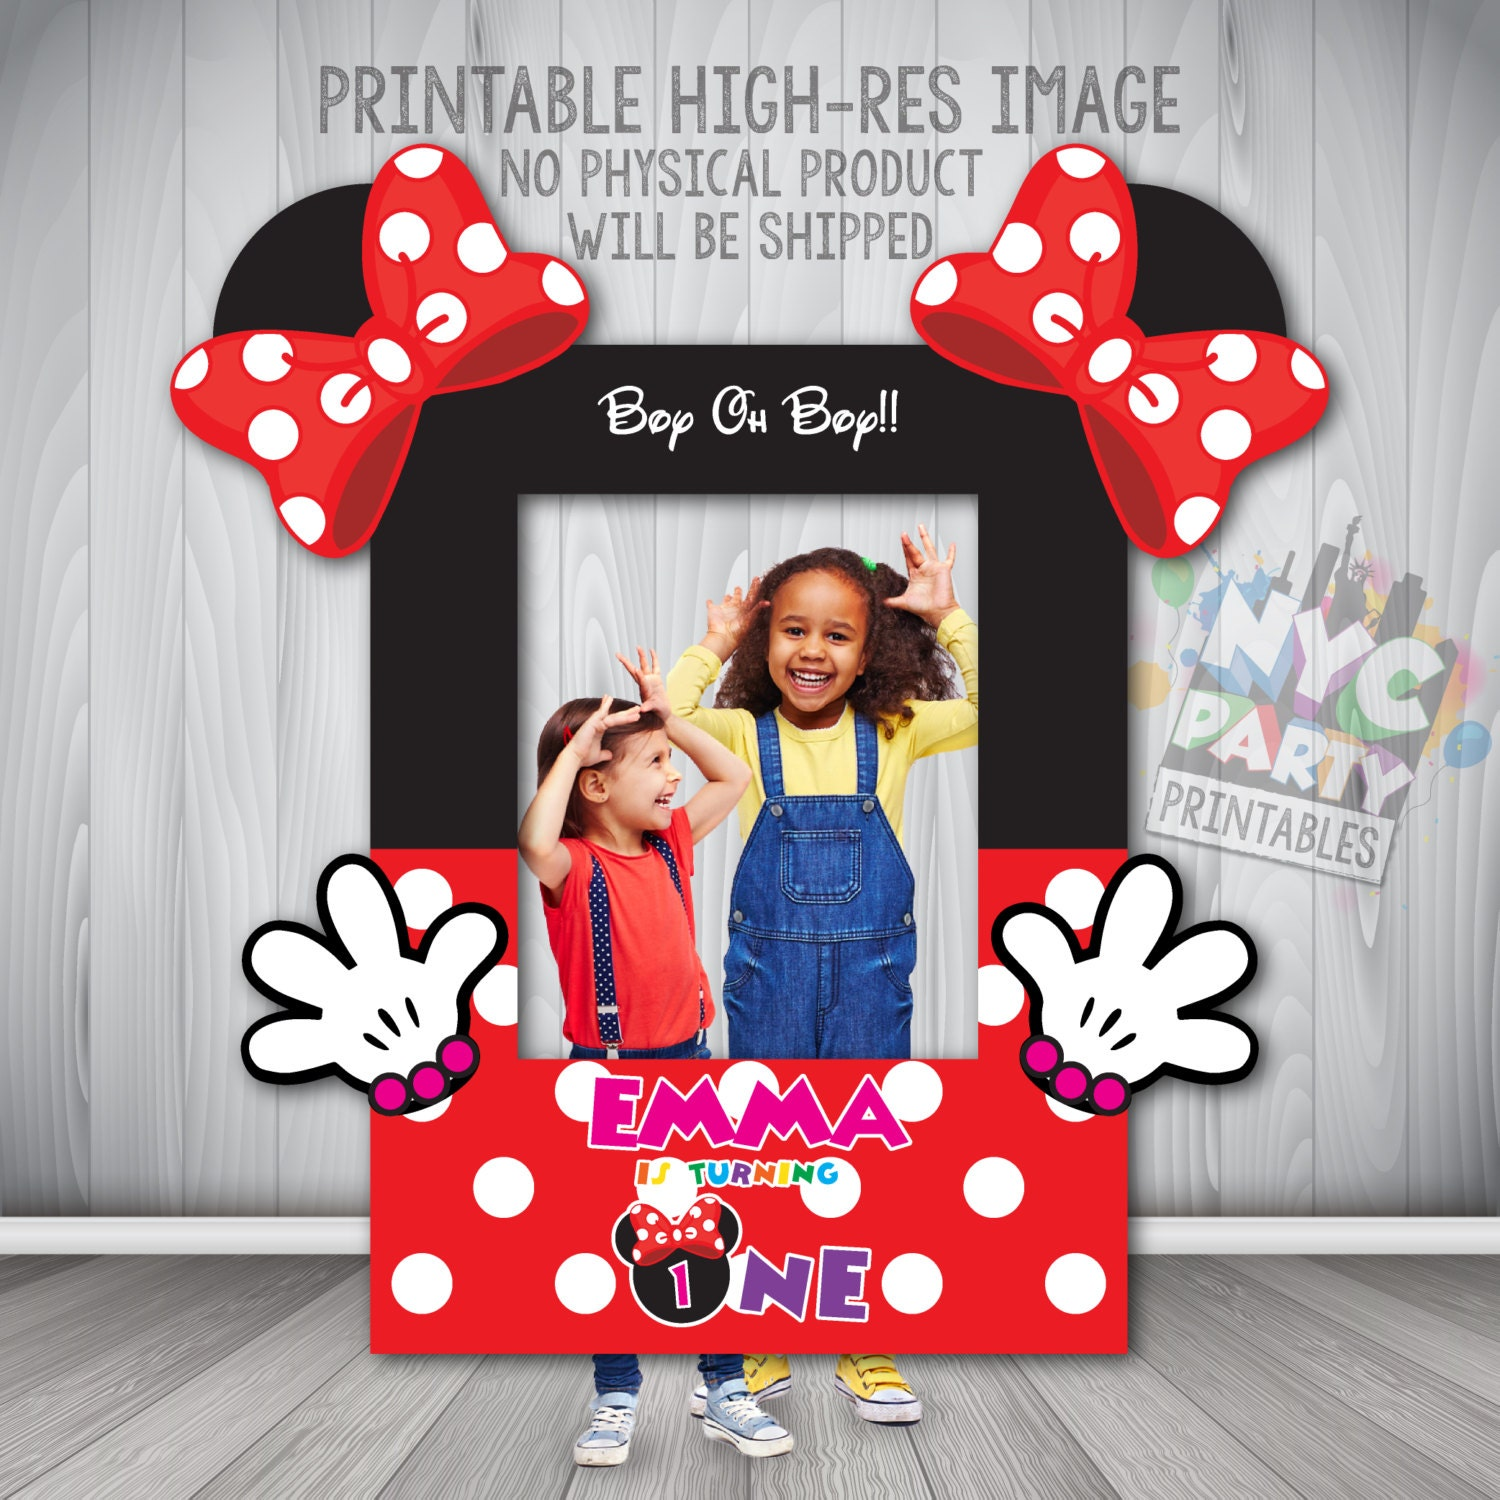 Minnie Mouse Photo Booth Rahmen Minnie Mouse Photobooth | Etsy